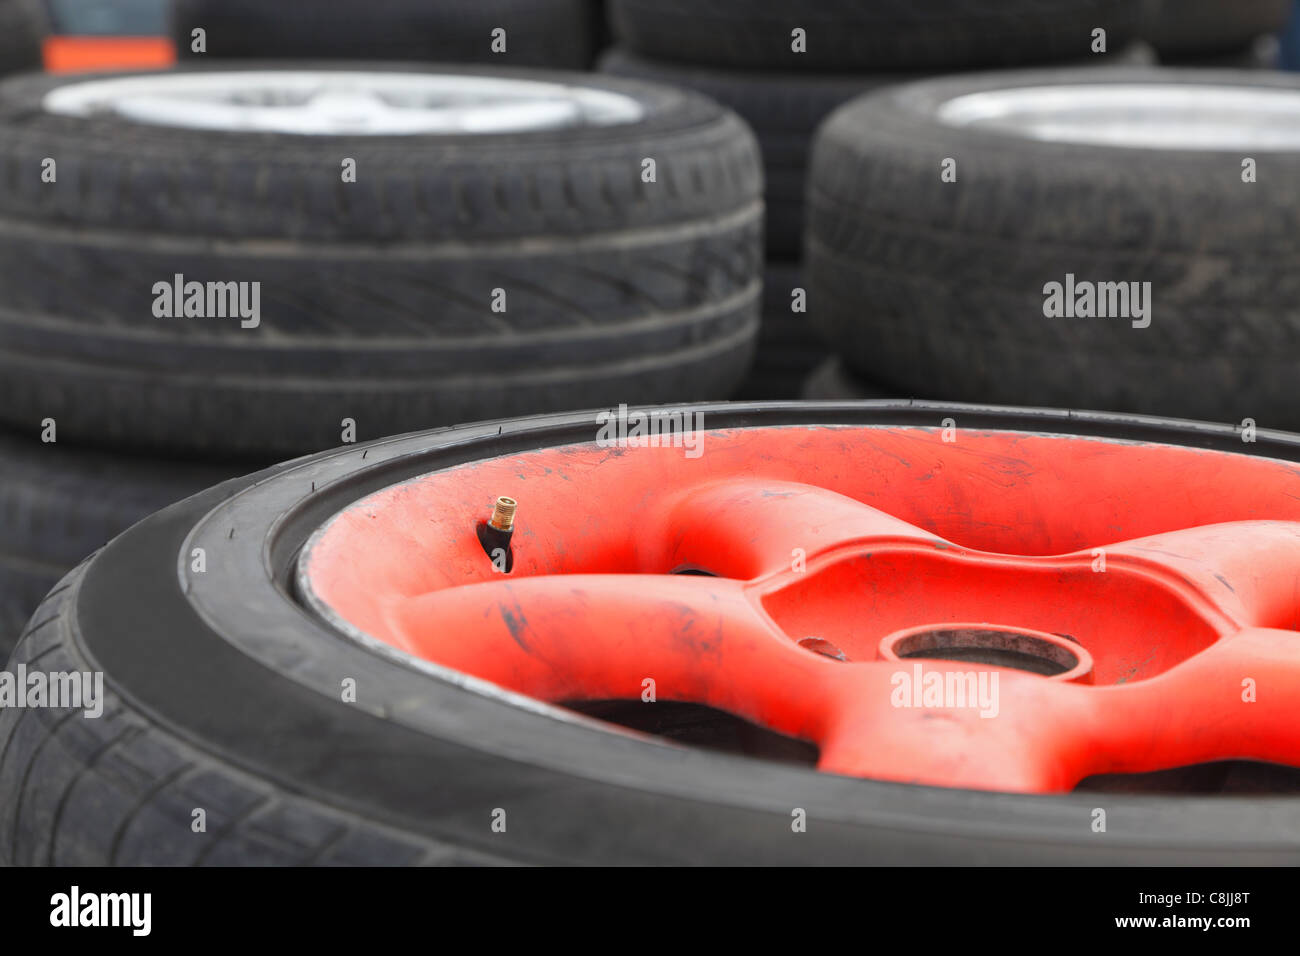 Image of a heap of race car wheels. Selective focus on the tire valve. - Stock Image